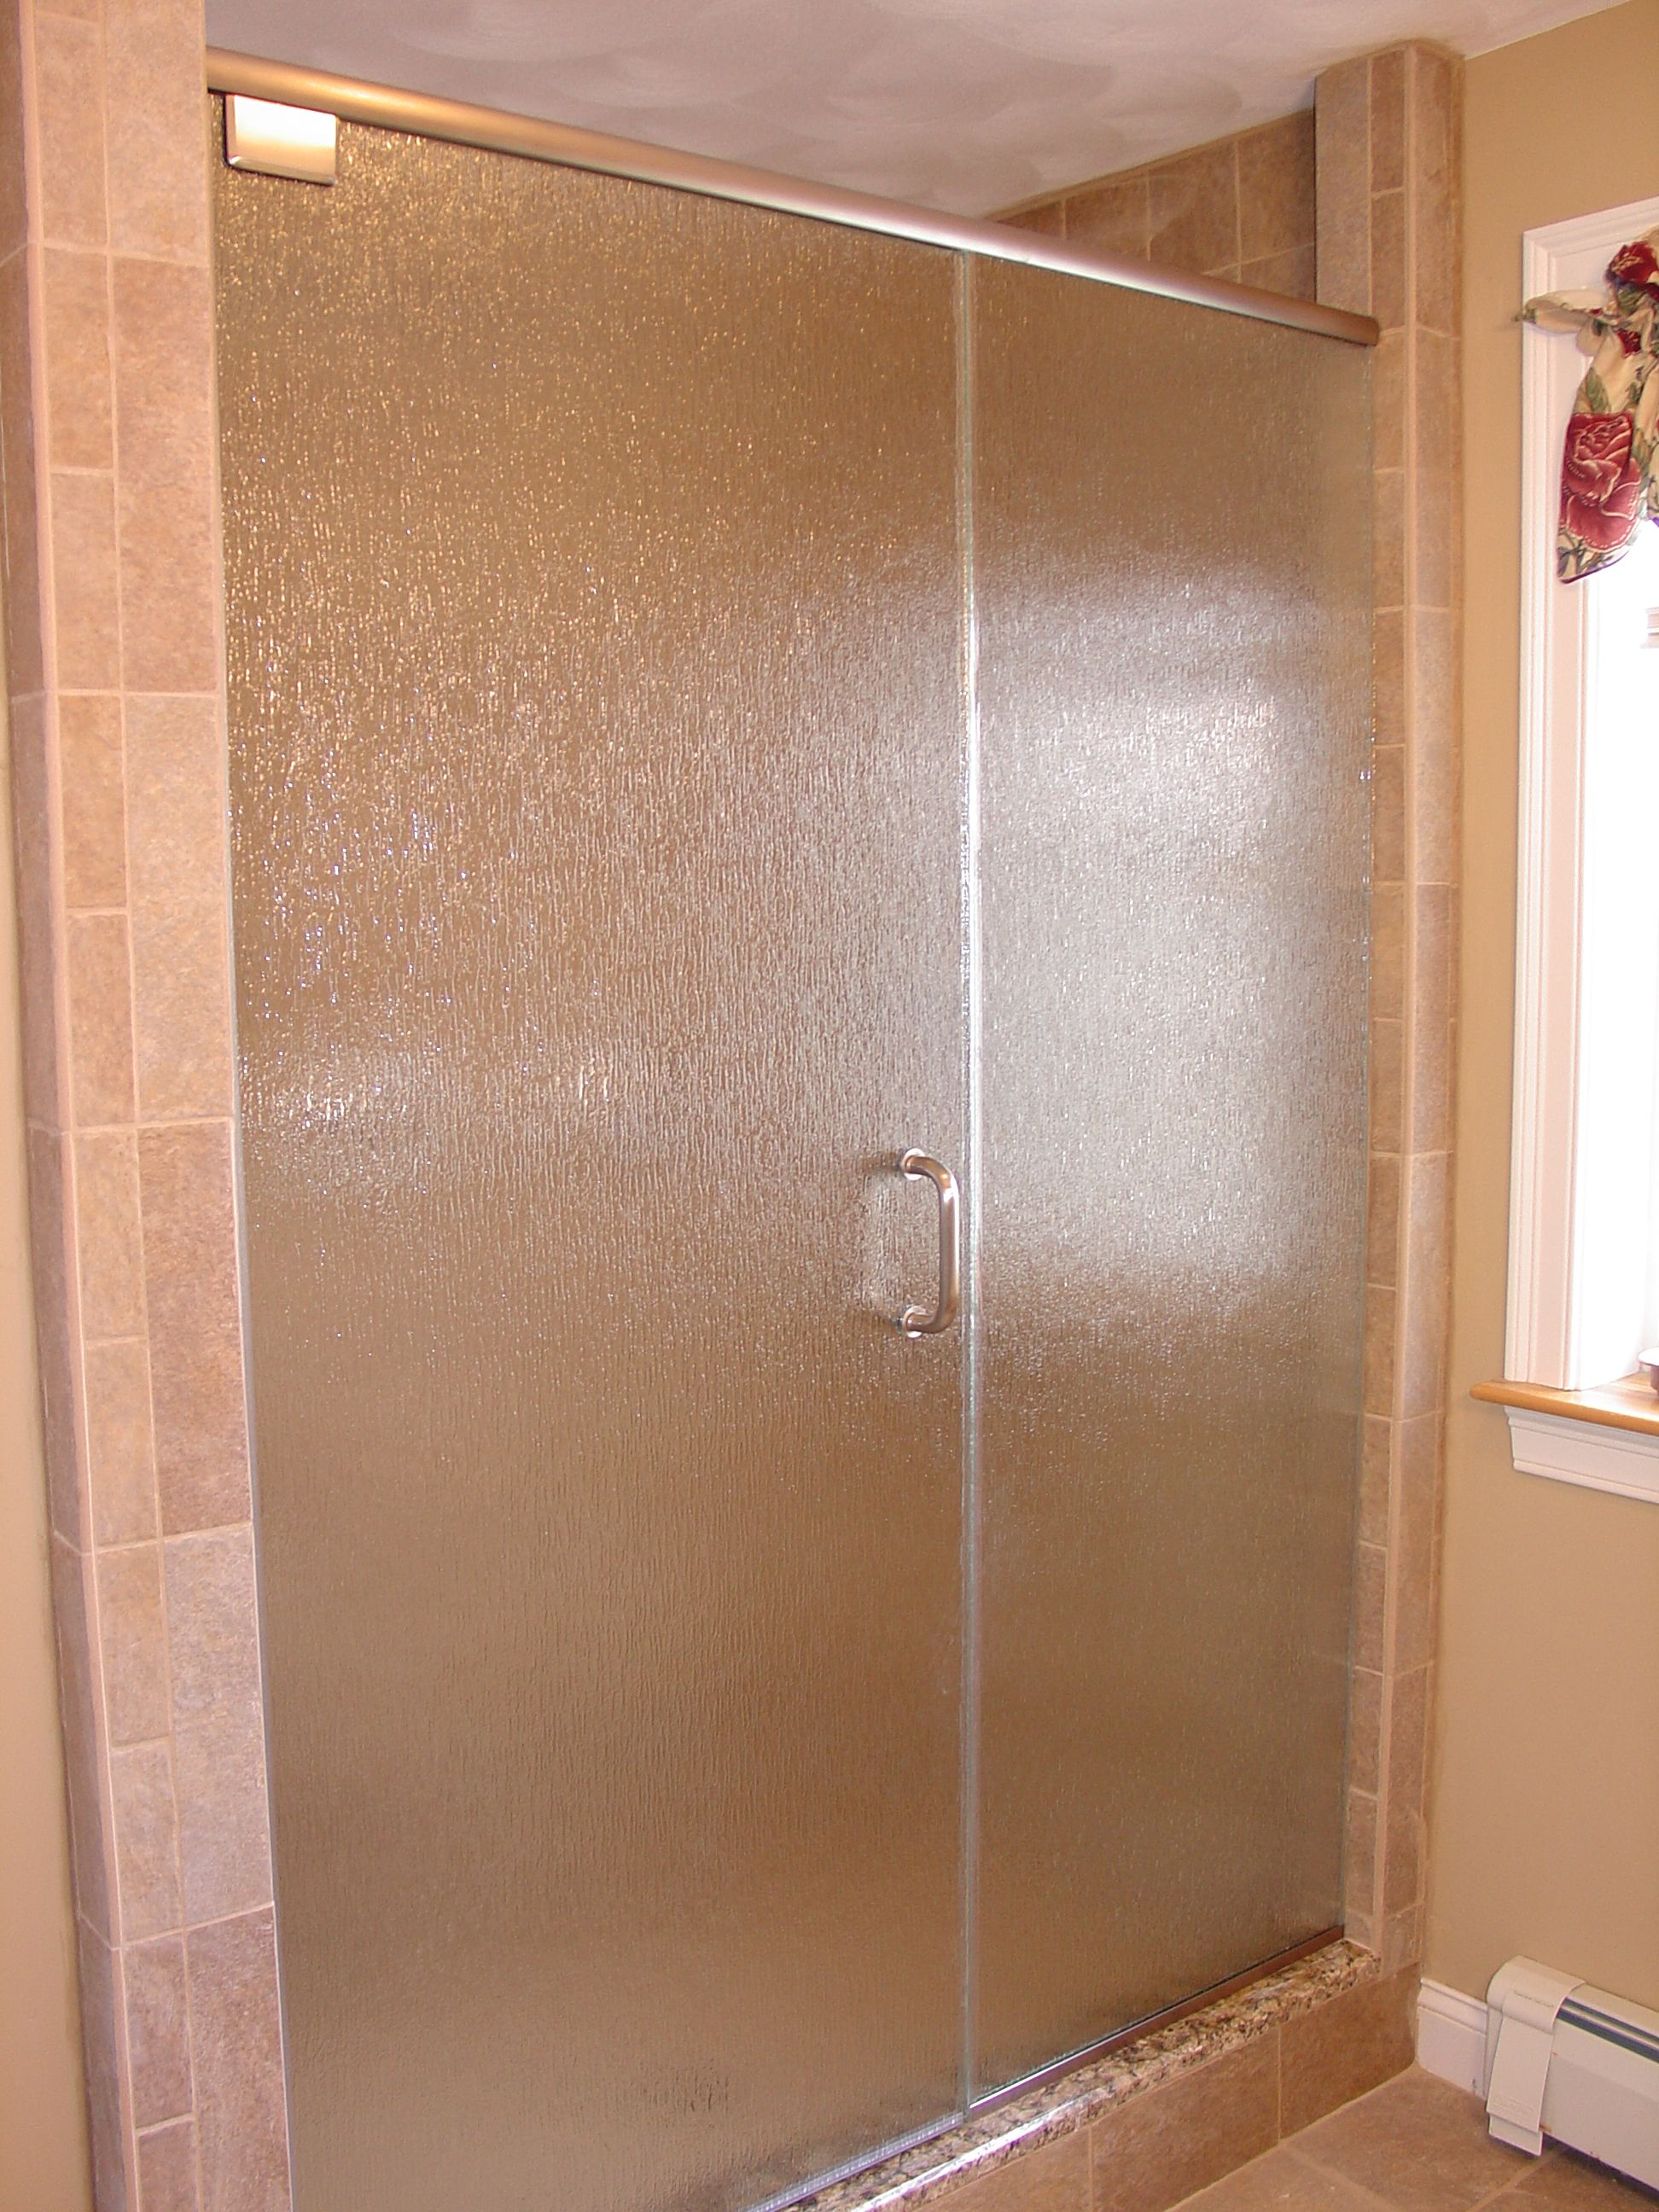 Glass Shower Doors Shower But Does Not Have A Header